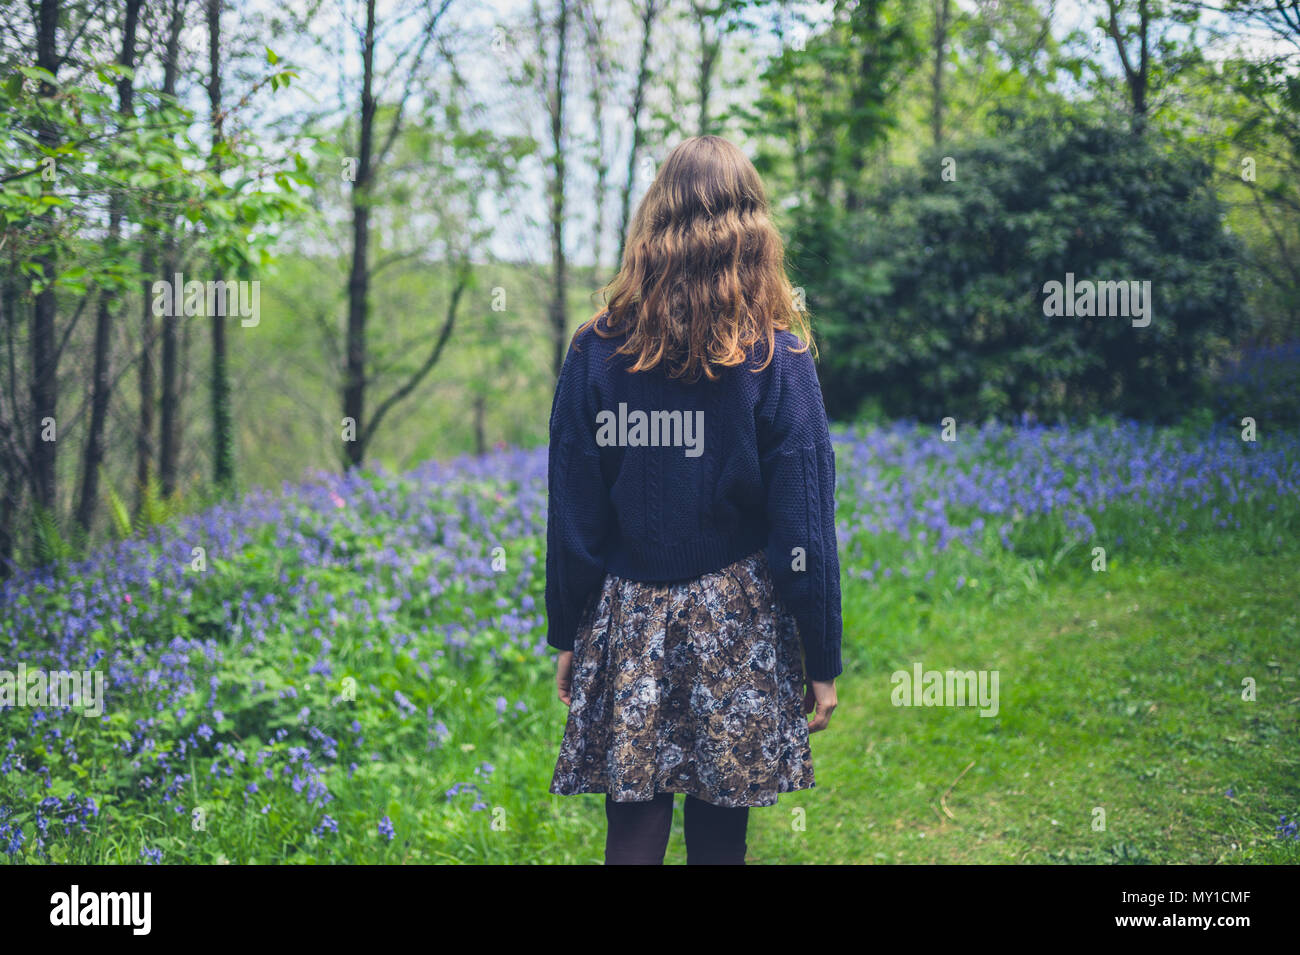 A young woman is walking in a forest with bluebells - Stock Image